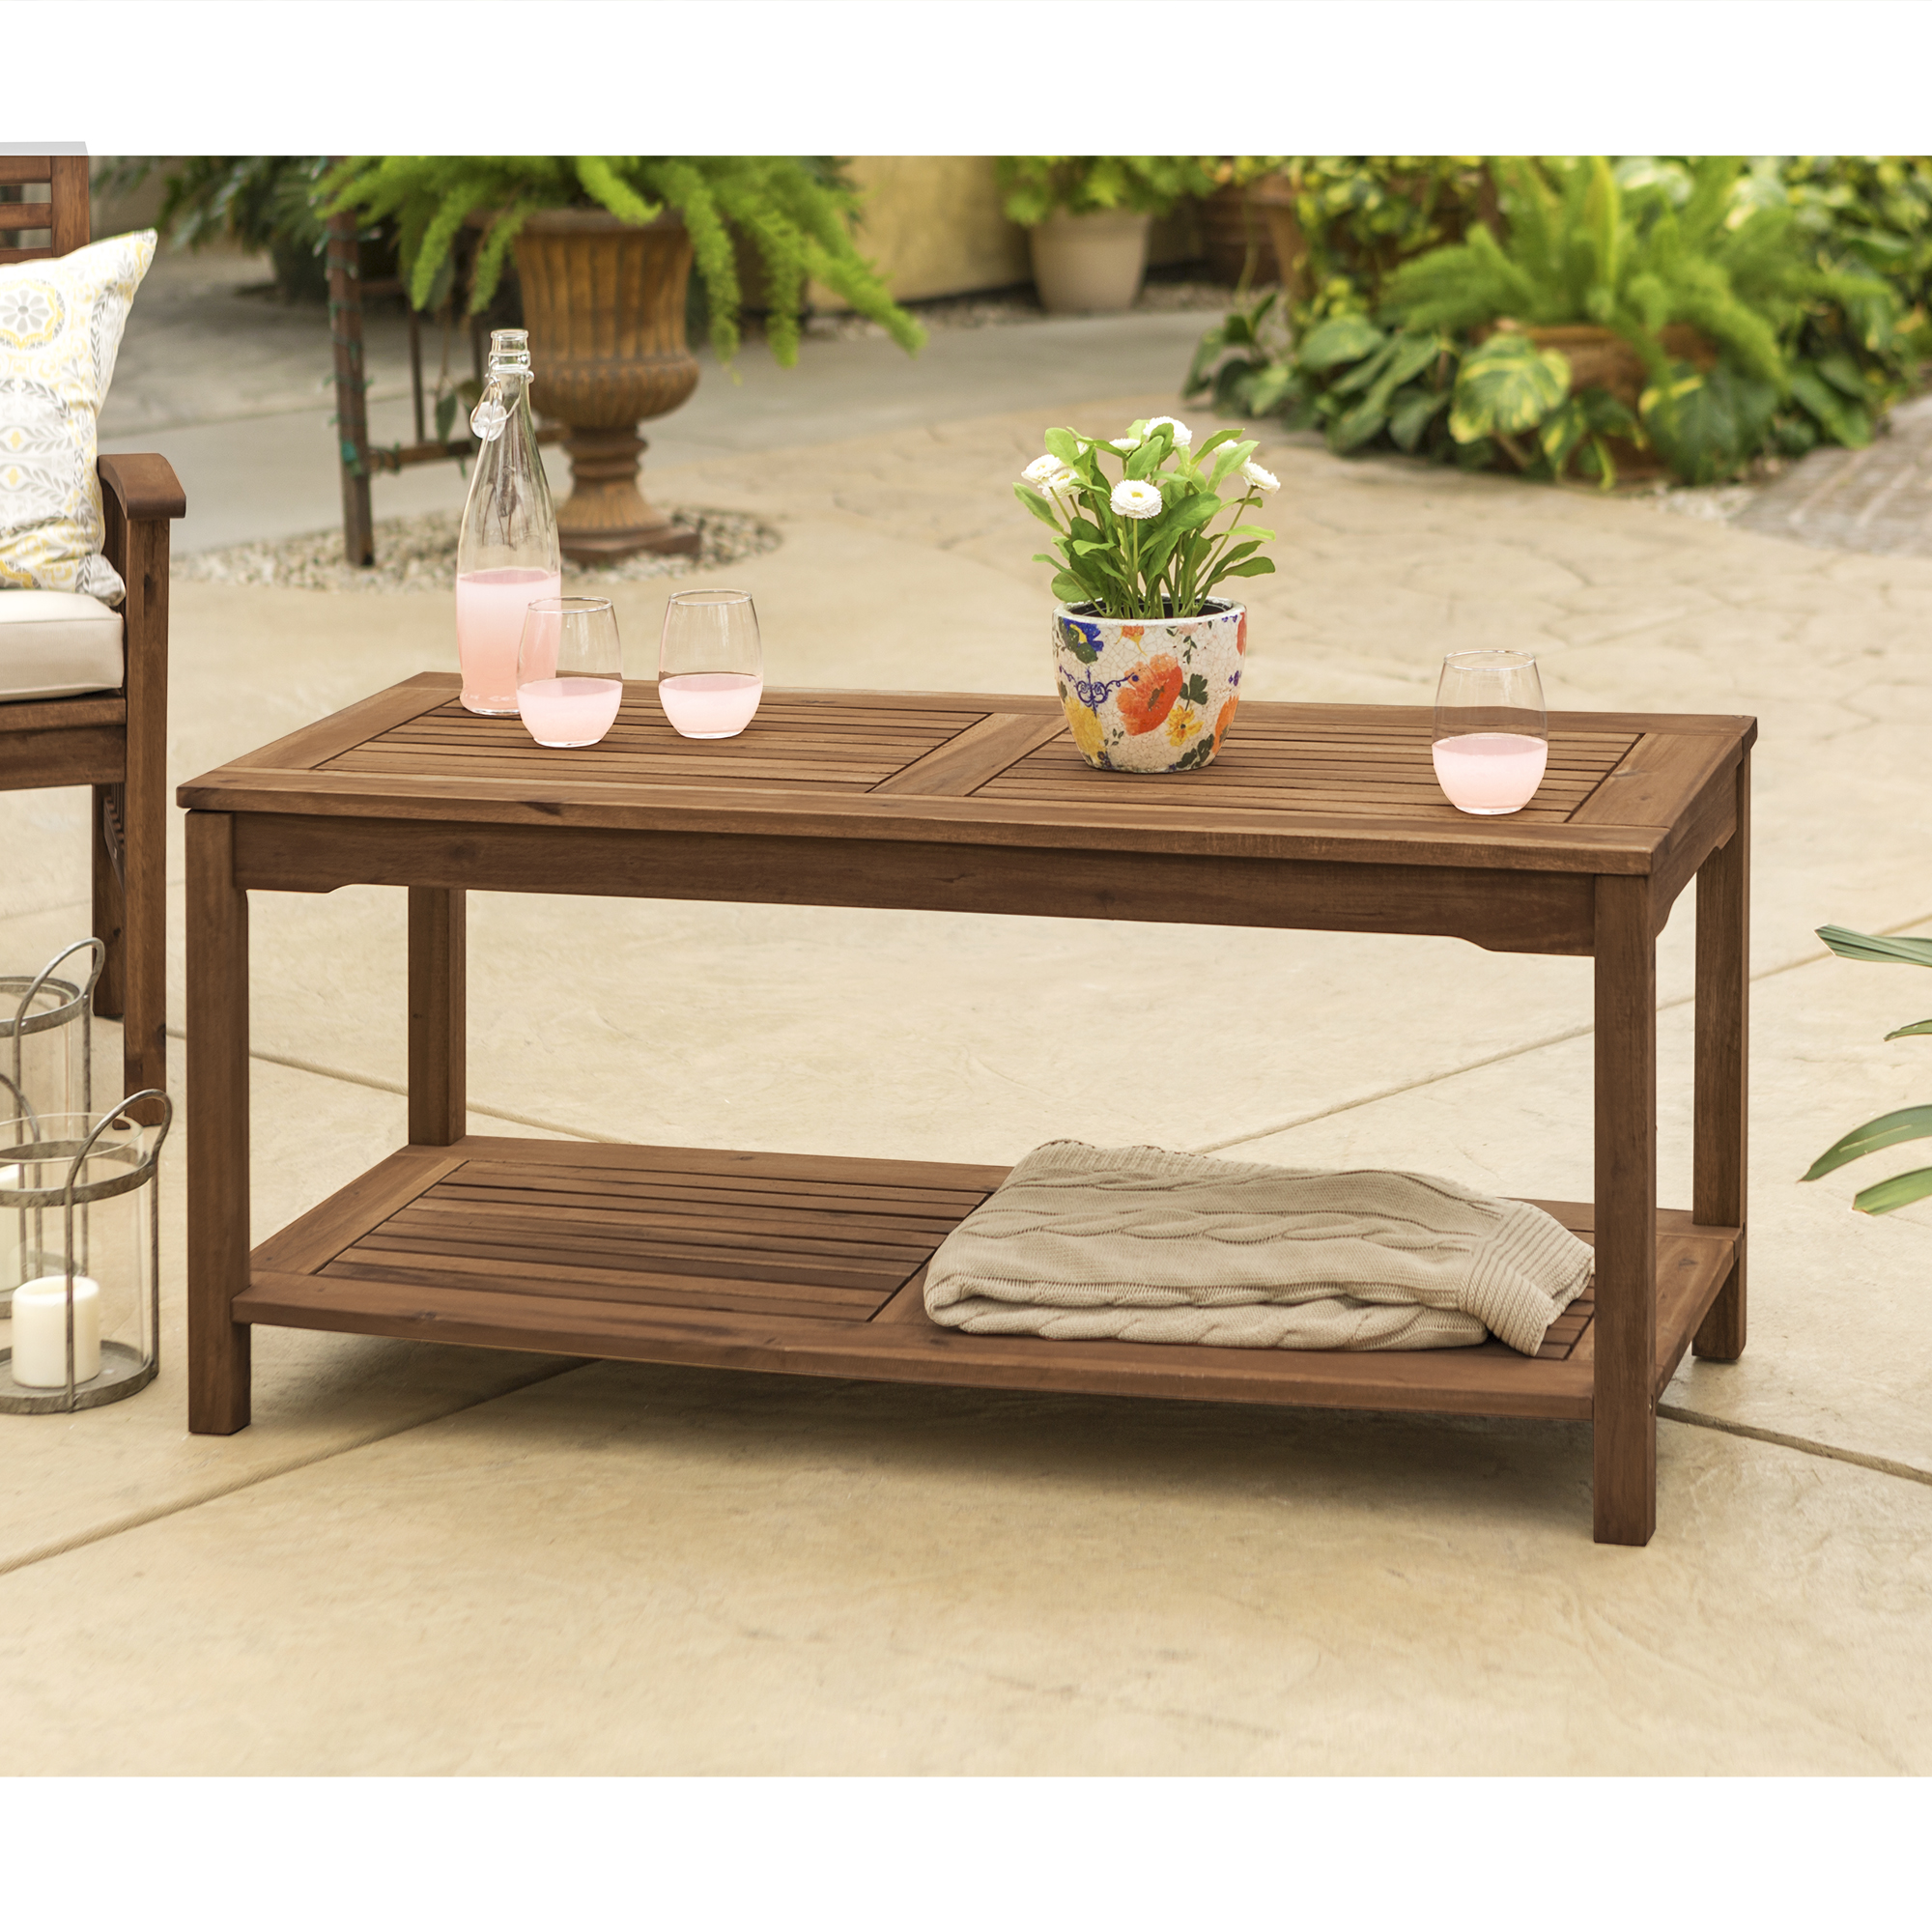 Manor Park Wood Patio Coffee Table, Brown by Manor Park